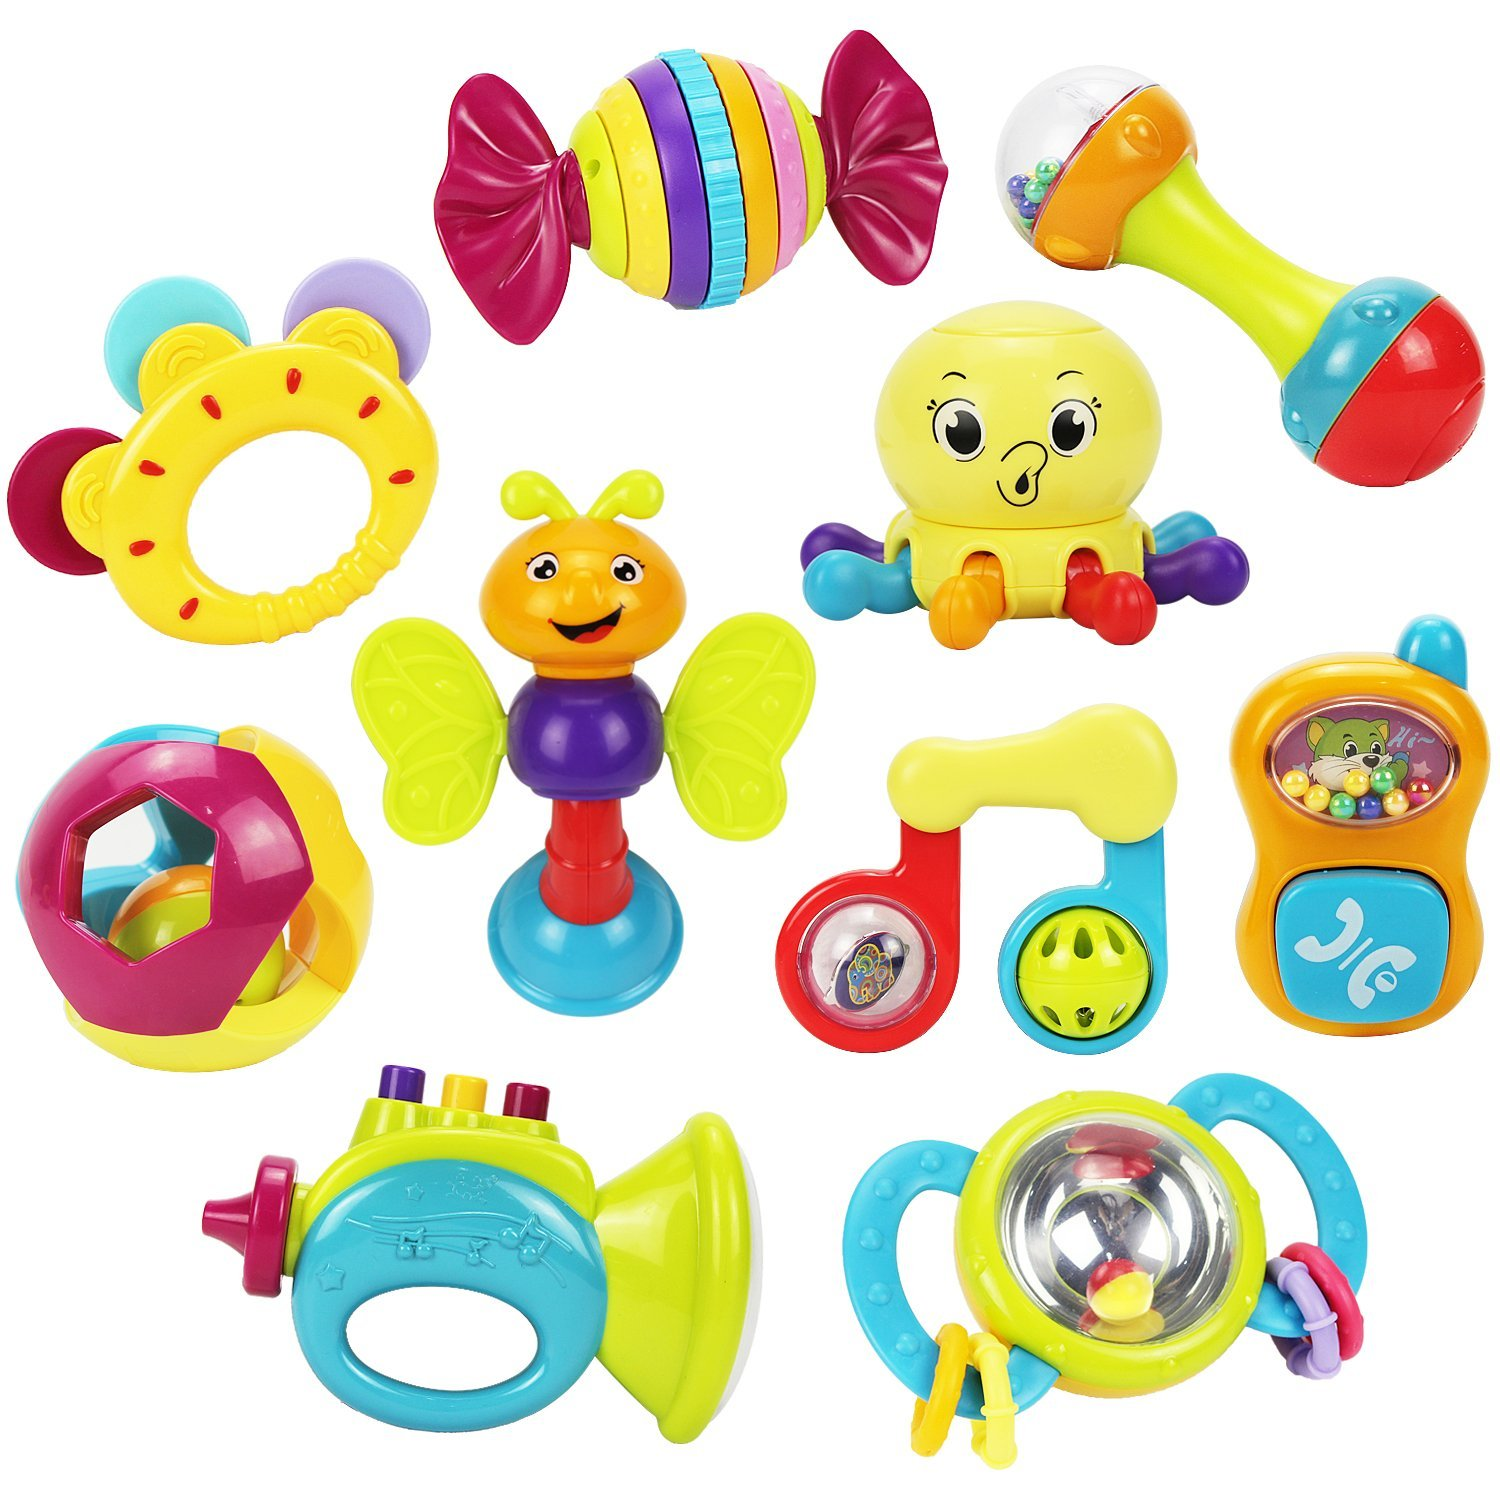 10 Baby Rattles Teether, Ball Shaker, Grab and Spin Rattle, Musical Toy Gift Set for Baby Infant, Newborn... by iPlay%2C iLearn